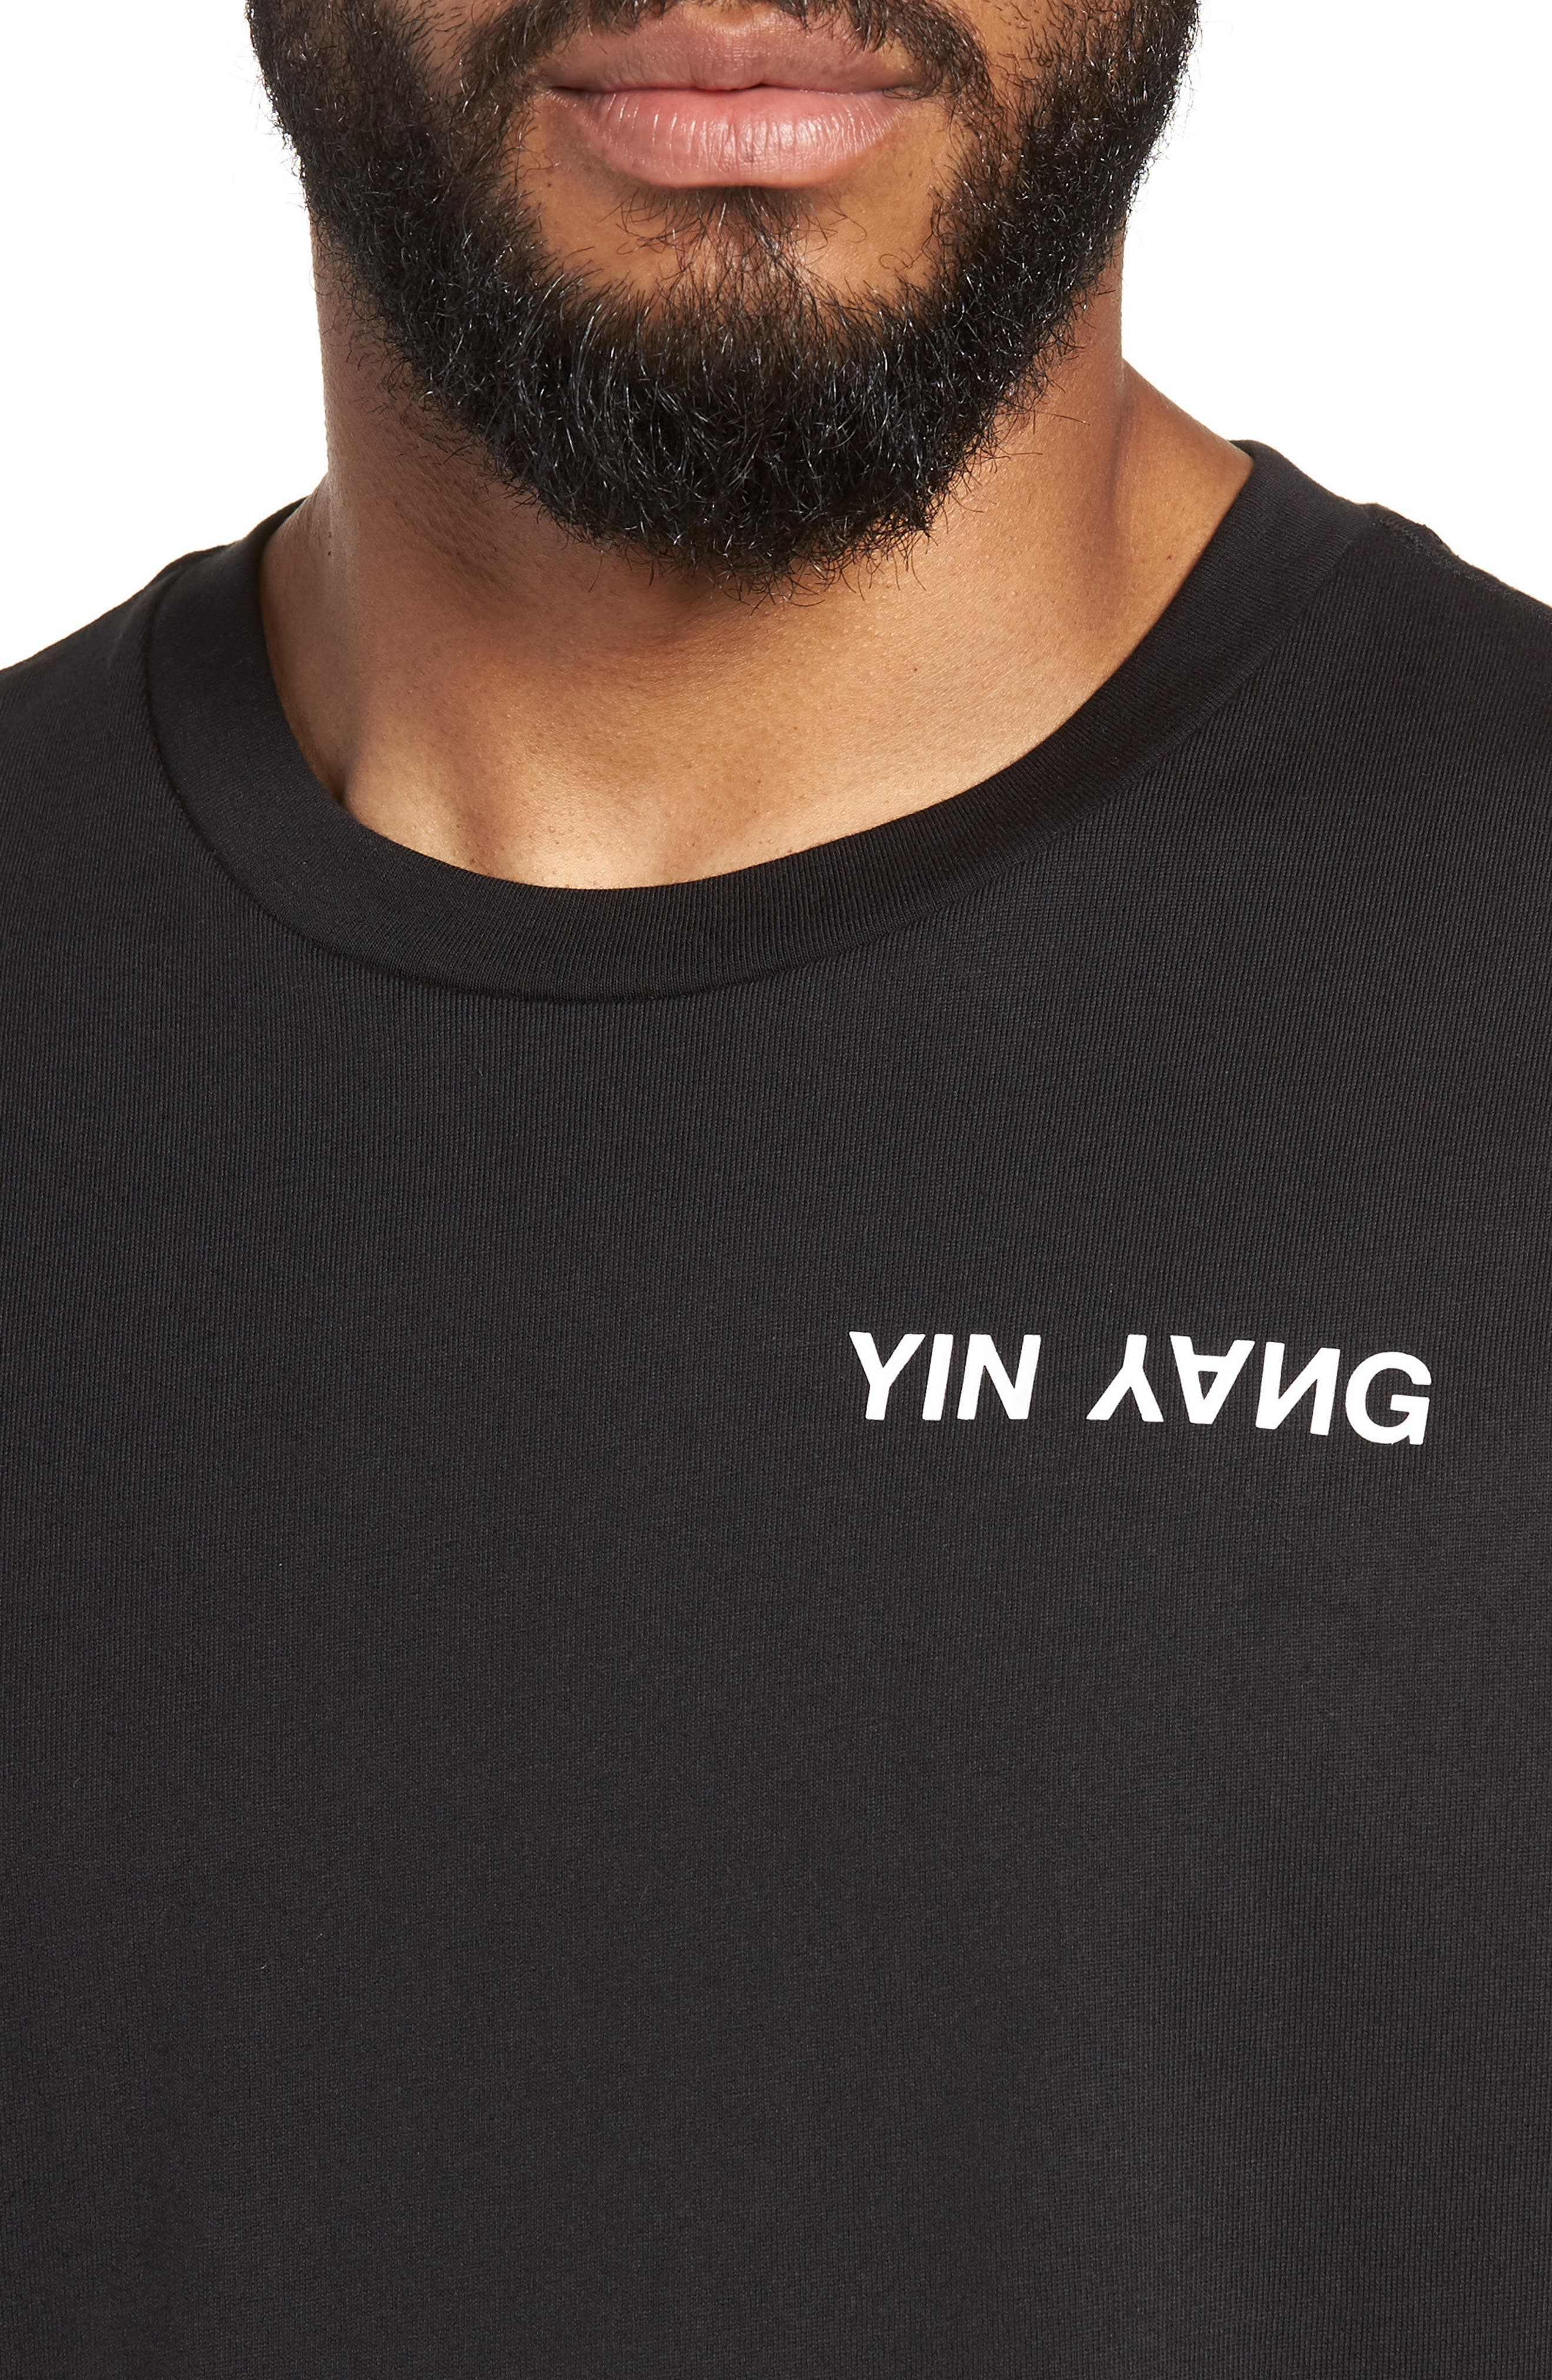 Yin Yang Graphic T-Shirt,                             Alternate thumbnail 4, color,                             001